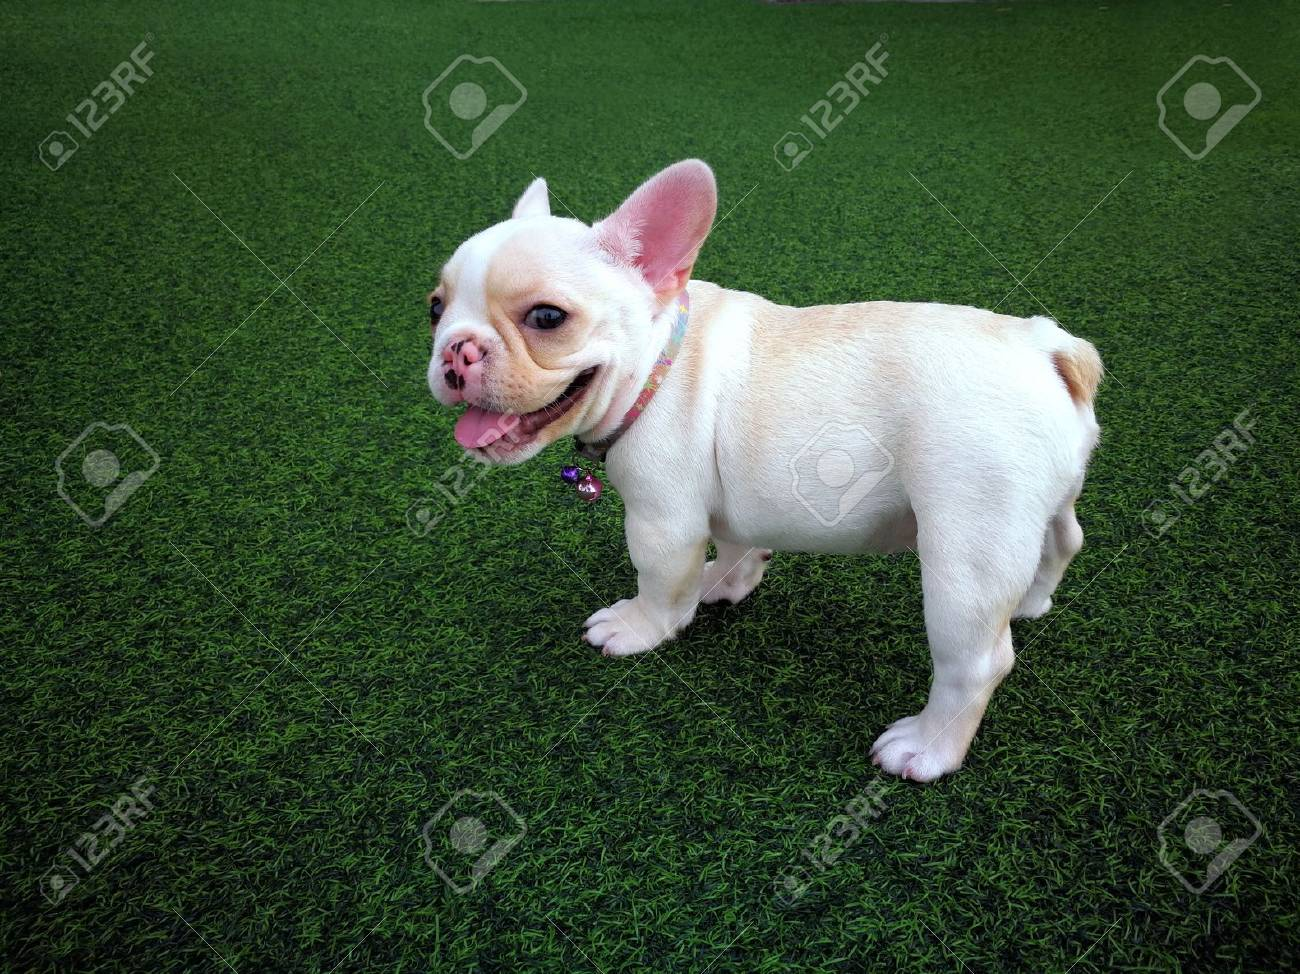 White Brown French Bulldog Puppy Standing On Green Artificial